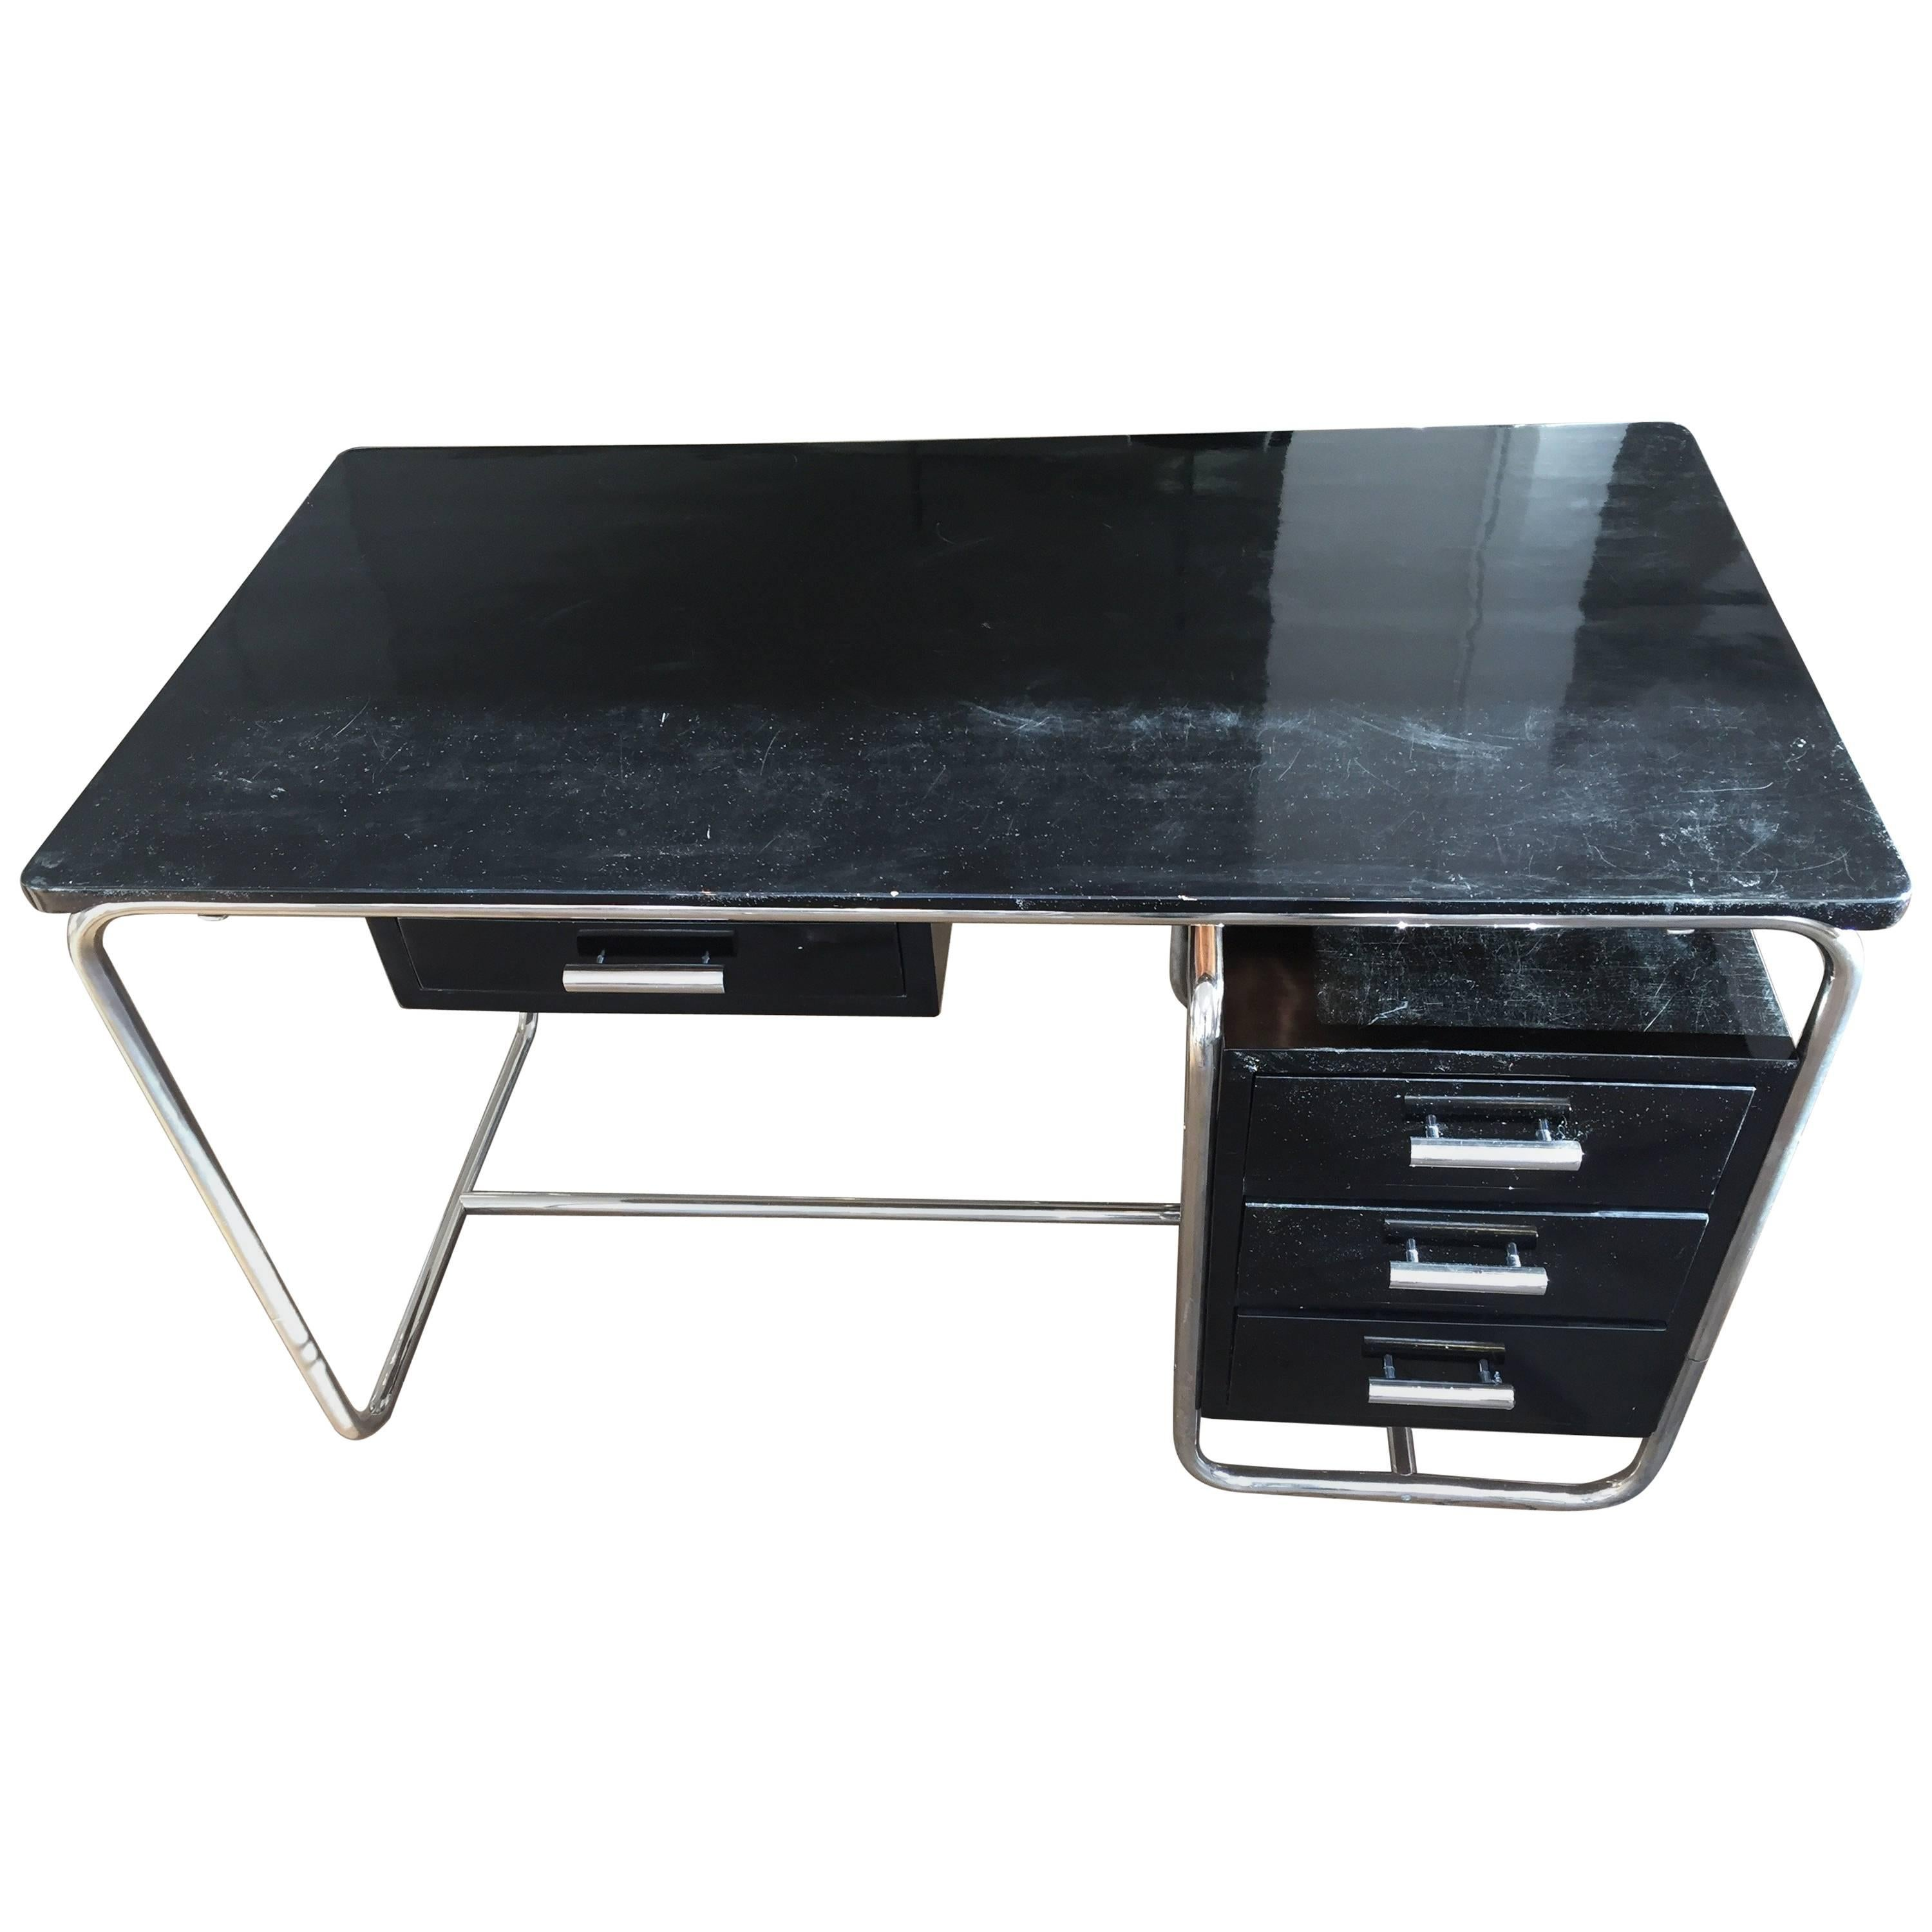 Amazing Marcel Breuer Bauhaus Writing Desk With Two Chairs Black Lacquered